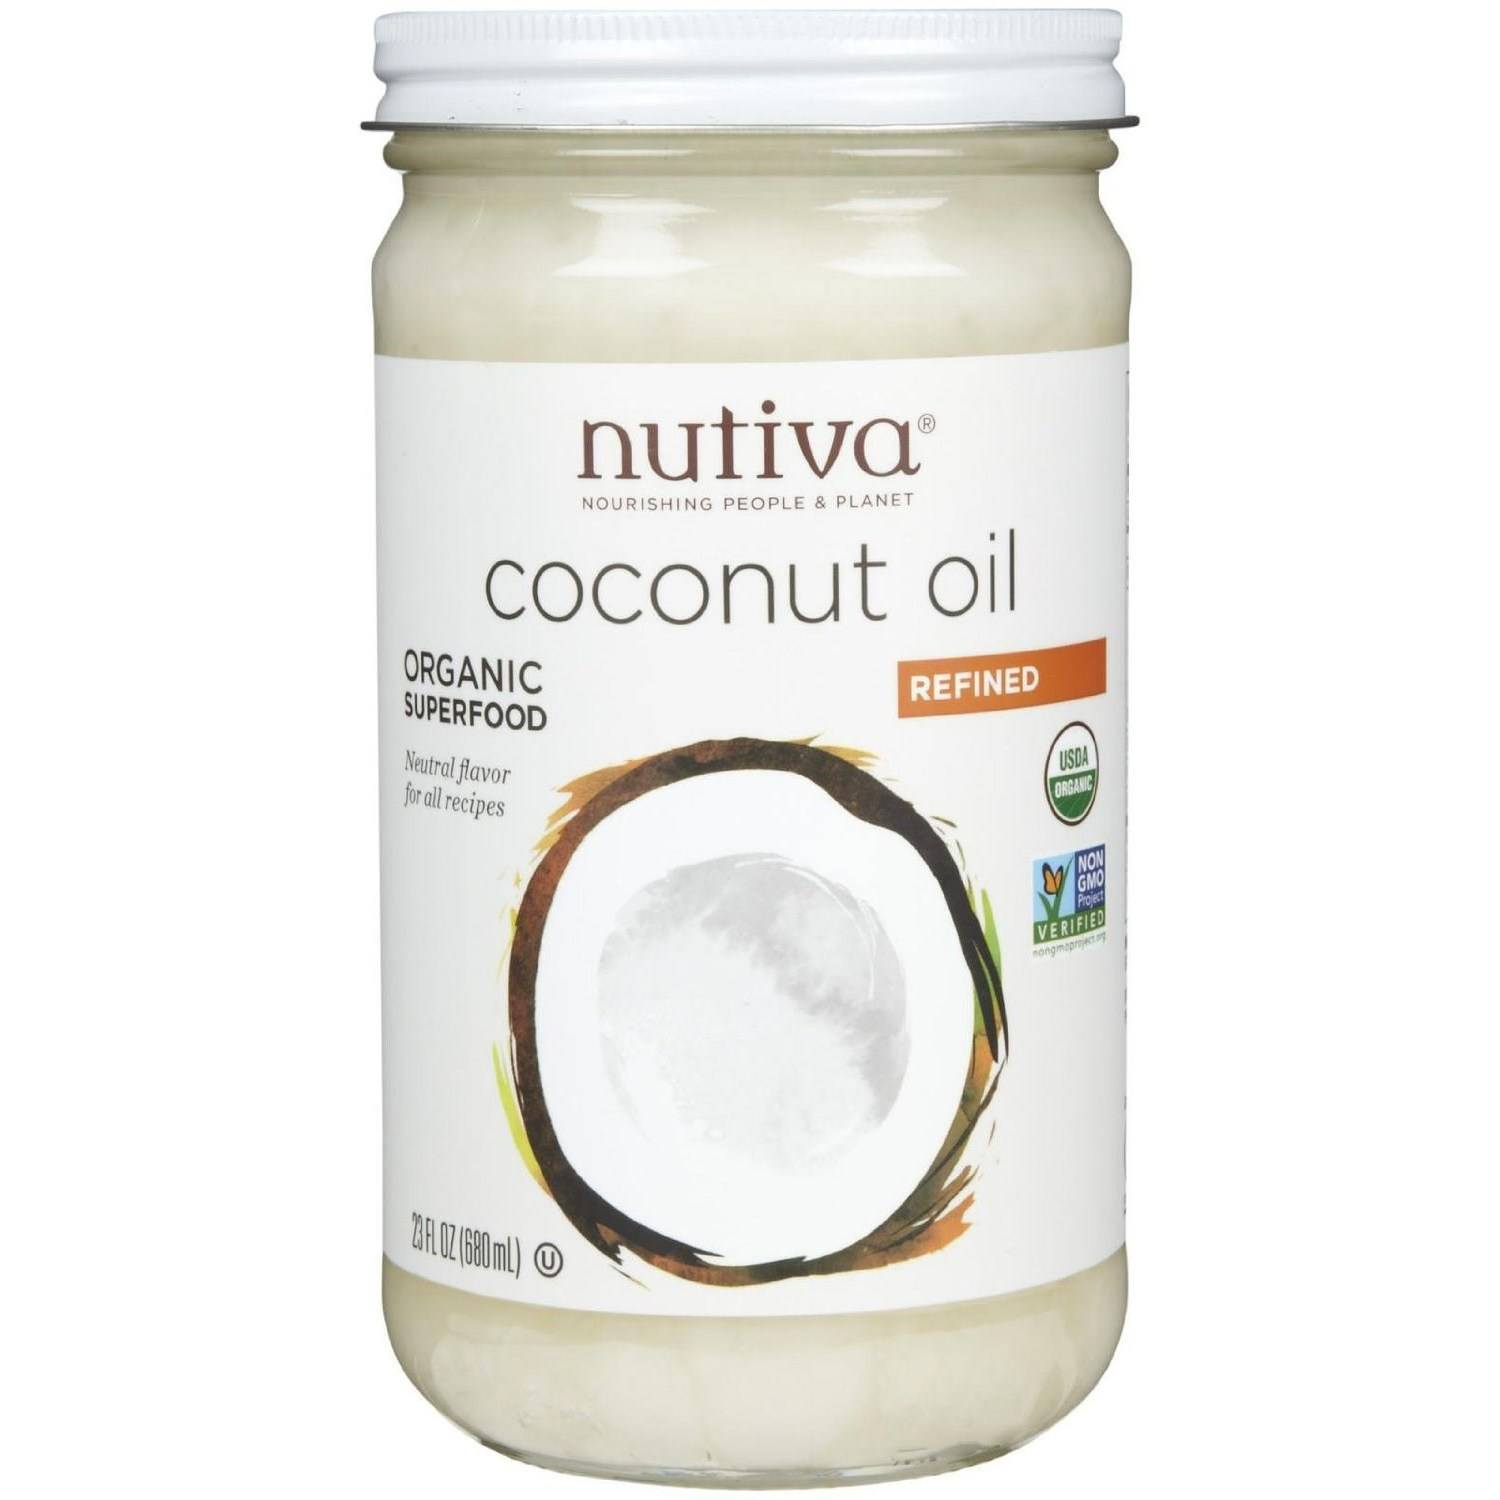 Nutiva Refined Coconut Oil, Organic, 23 Fluid Ounce (Pack of 2)